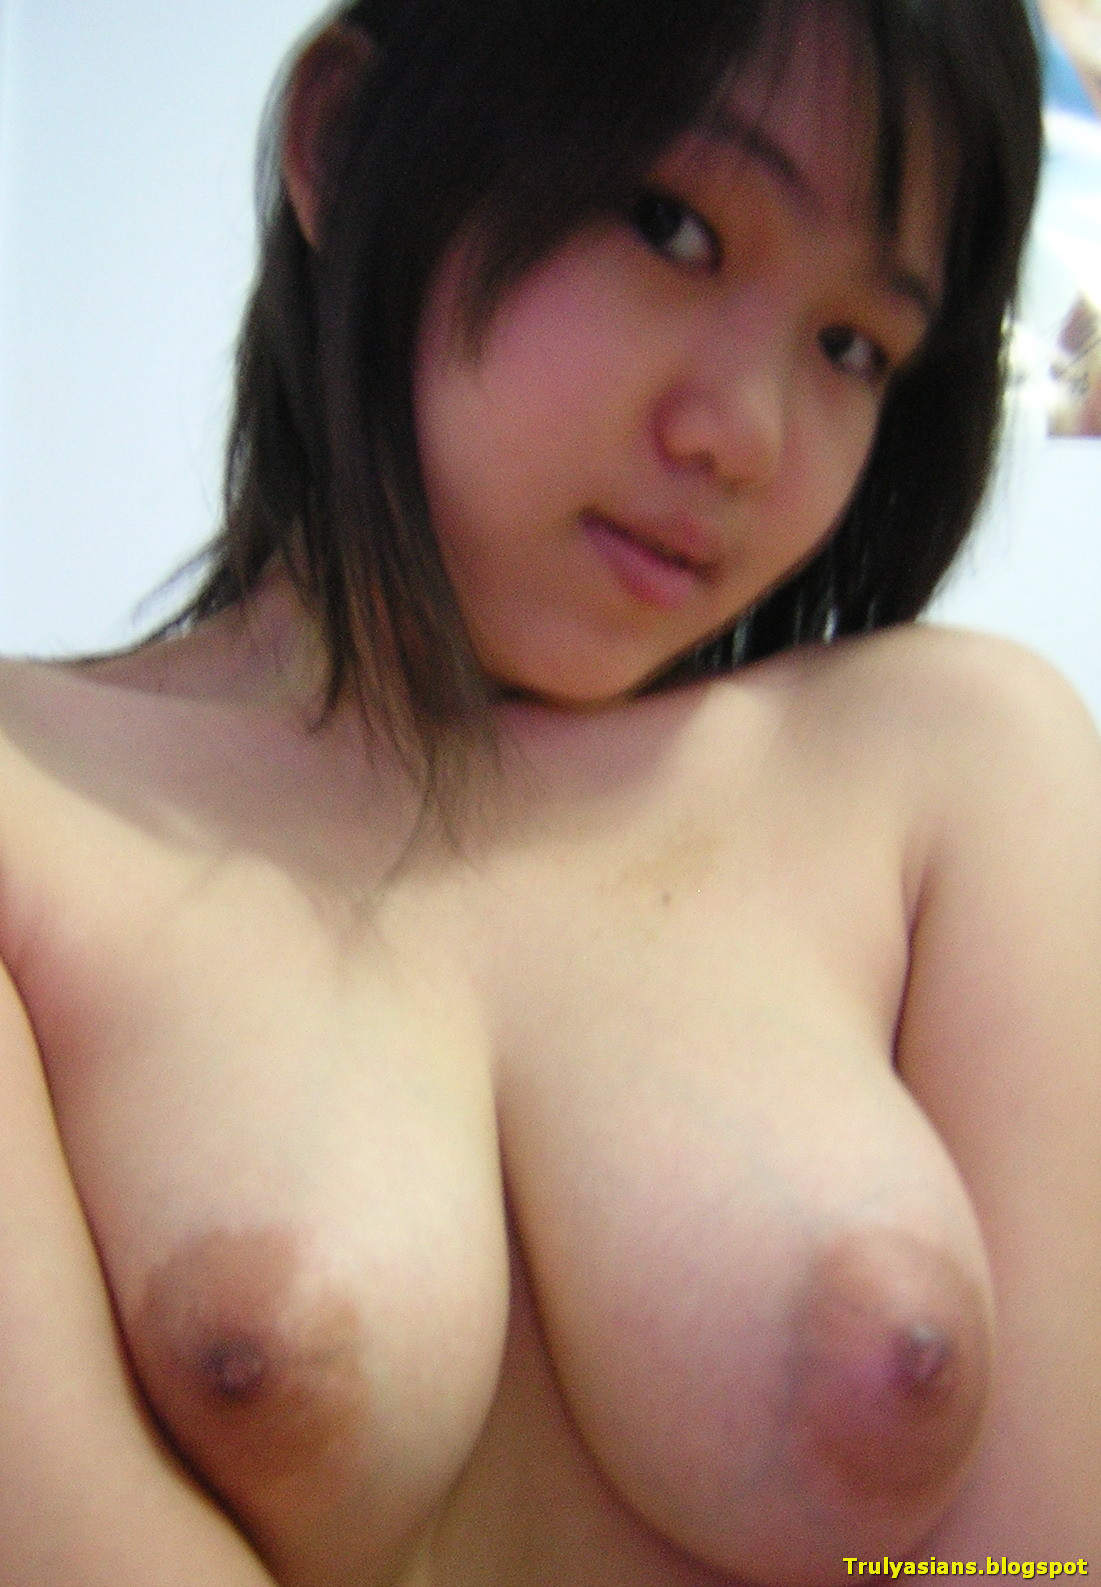 Indonesia girls sex fhoto opinion you